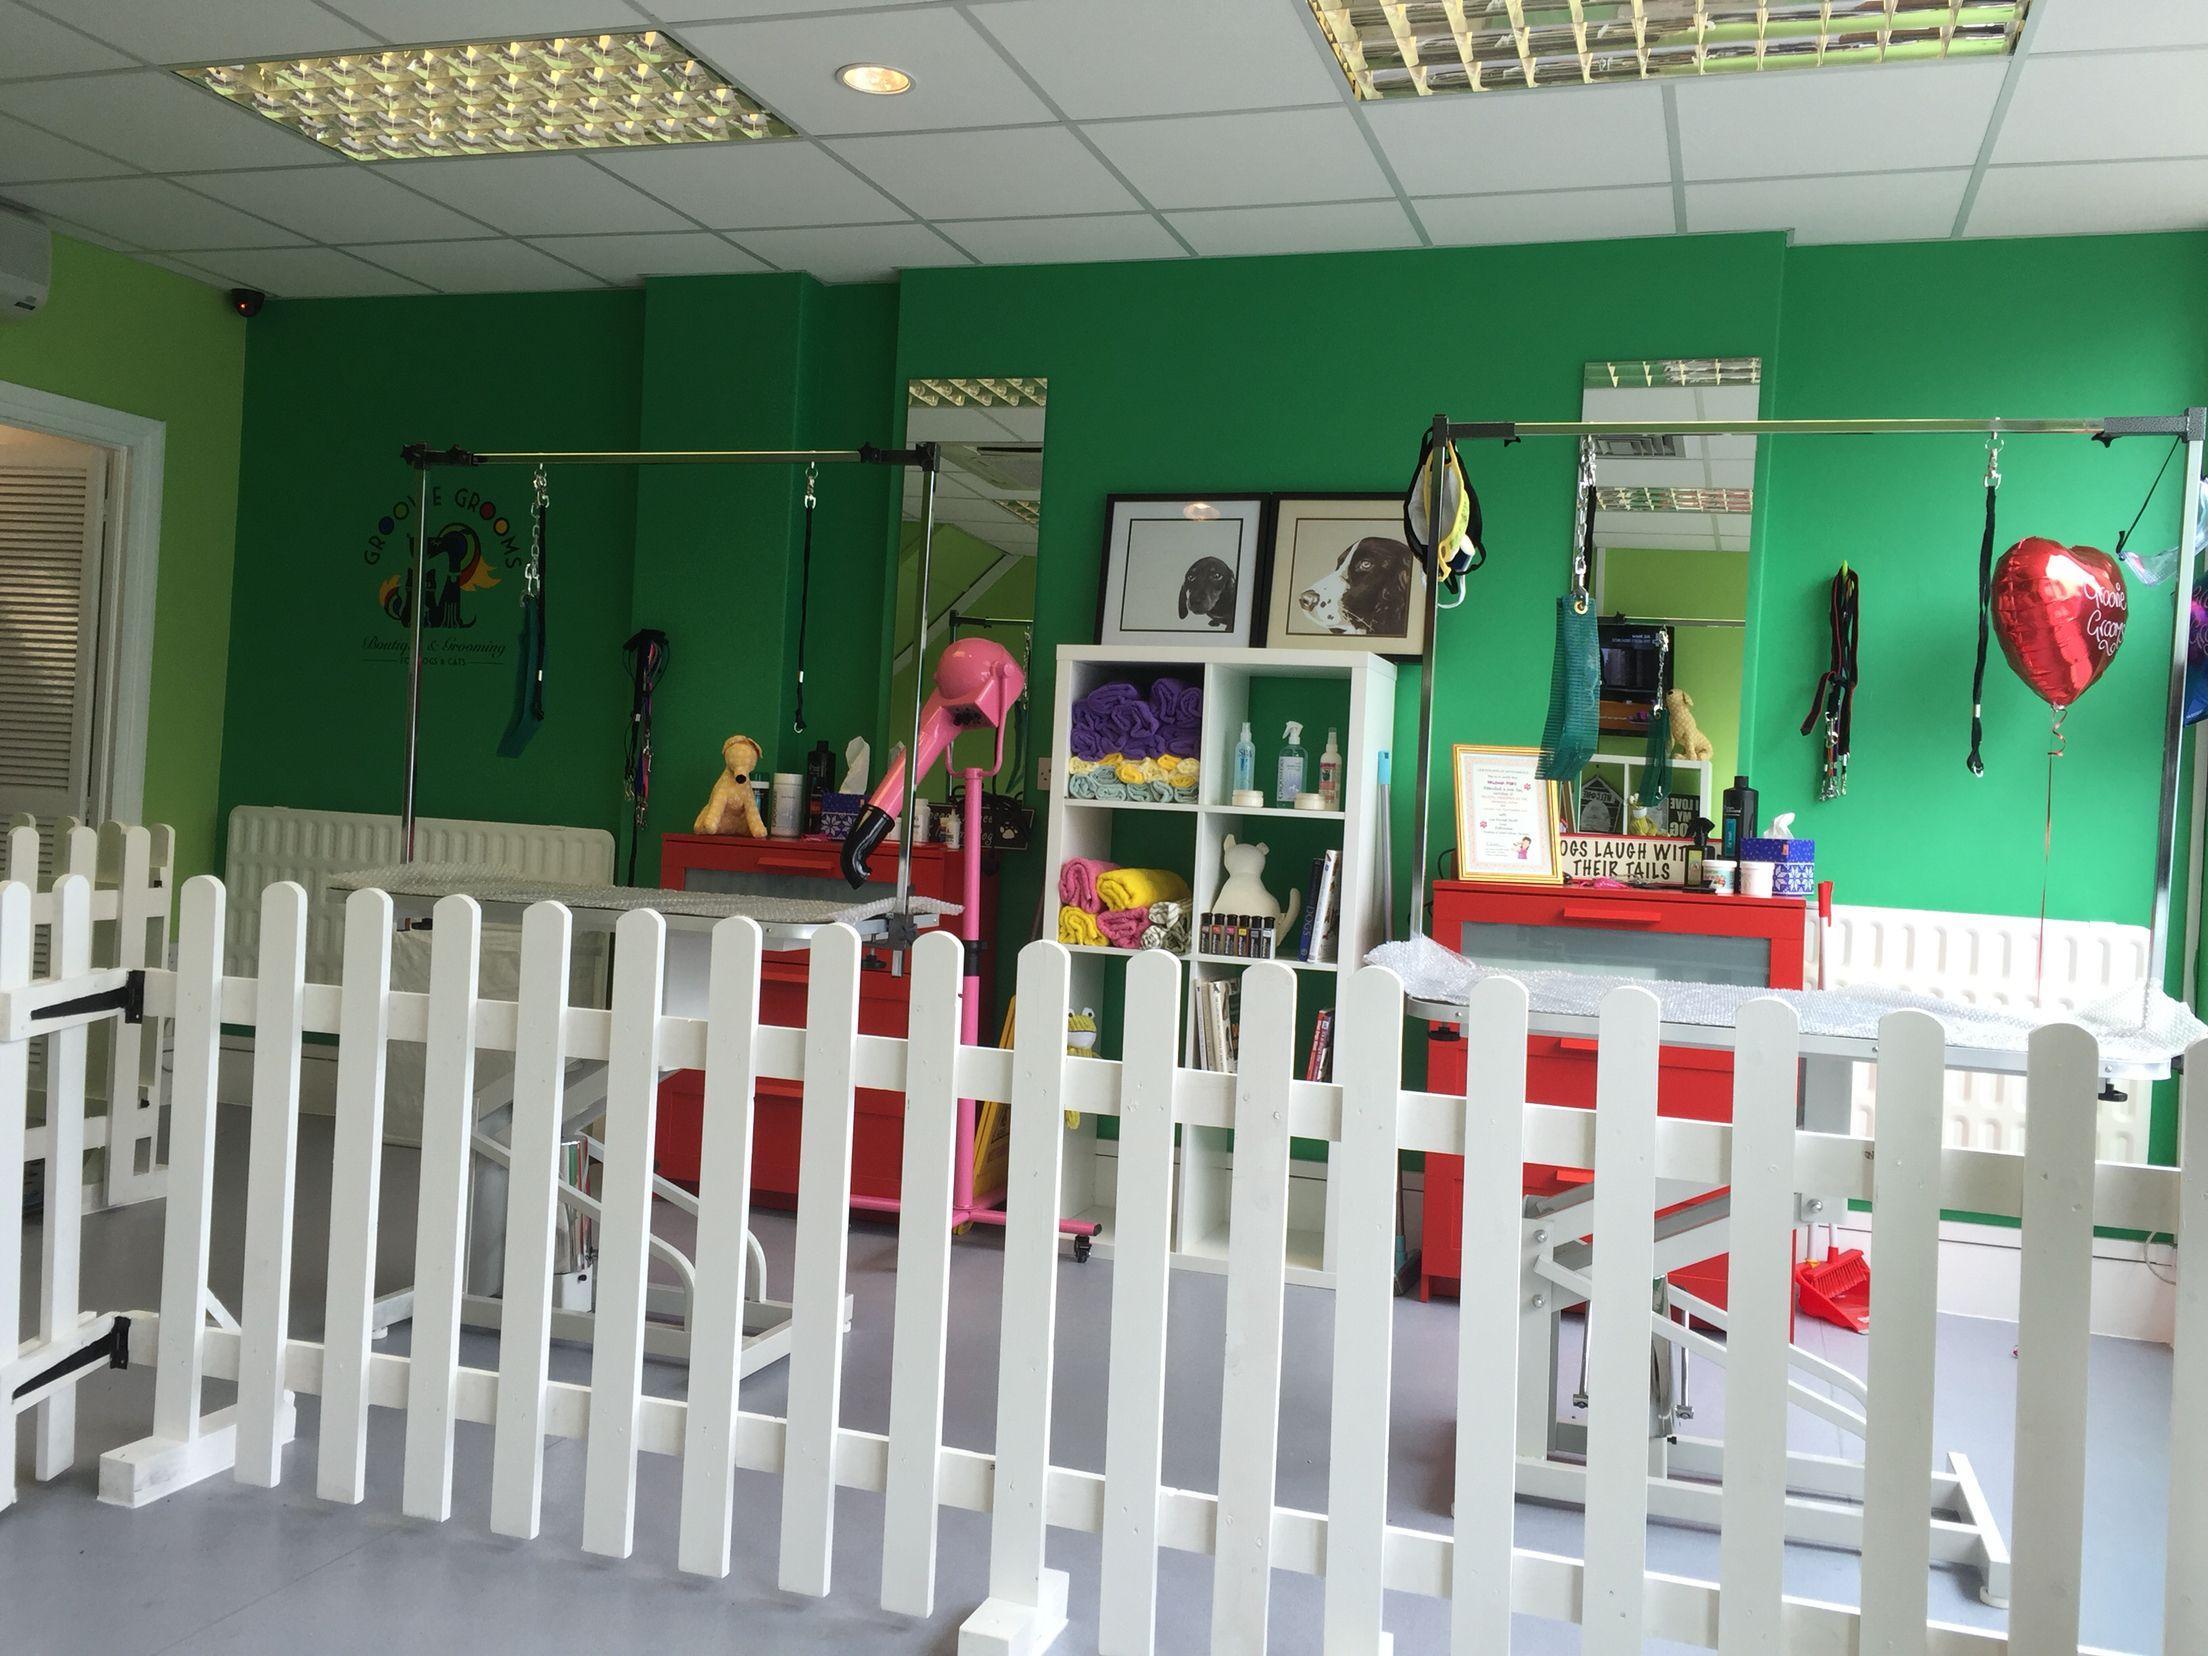 My new salon groovie grooms boutique and grooming for dogs and cats my new salon groovie grooms boutique and grooming for dogs and cats in london solutioingenieria Image collections